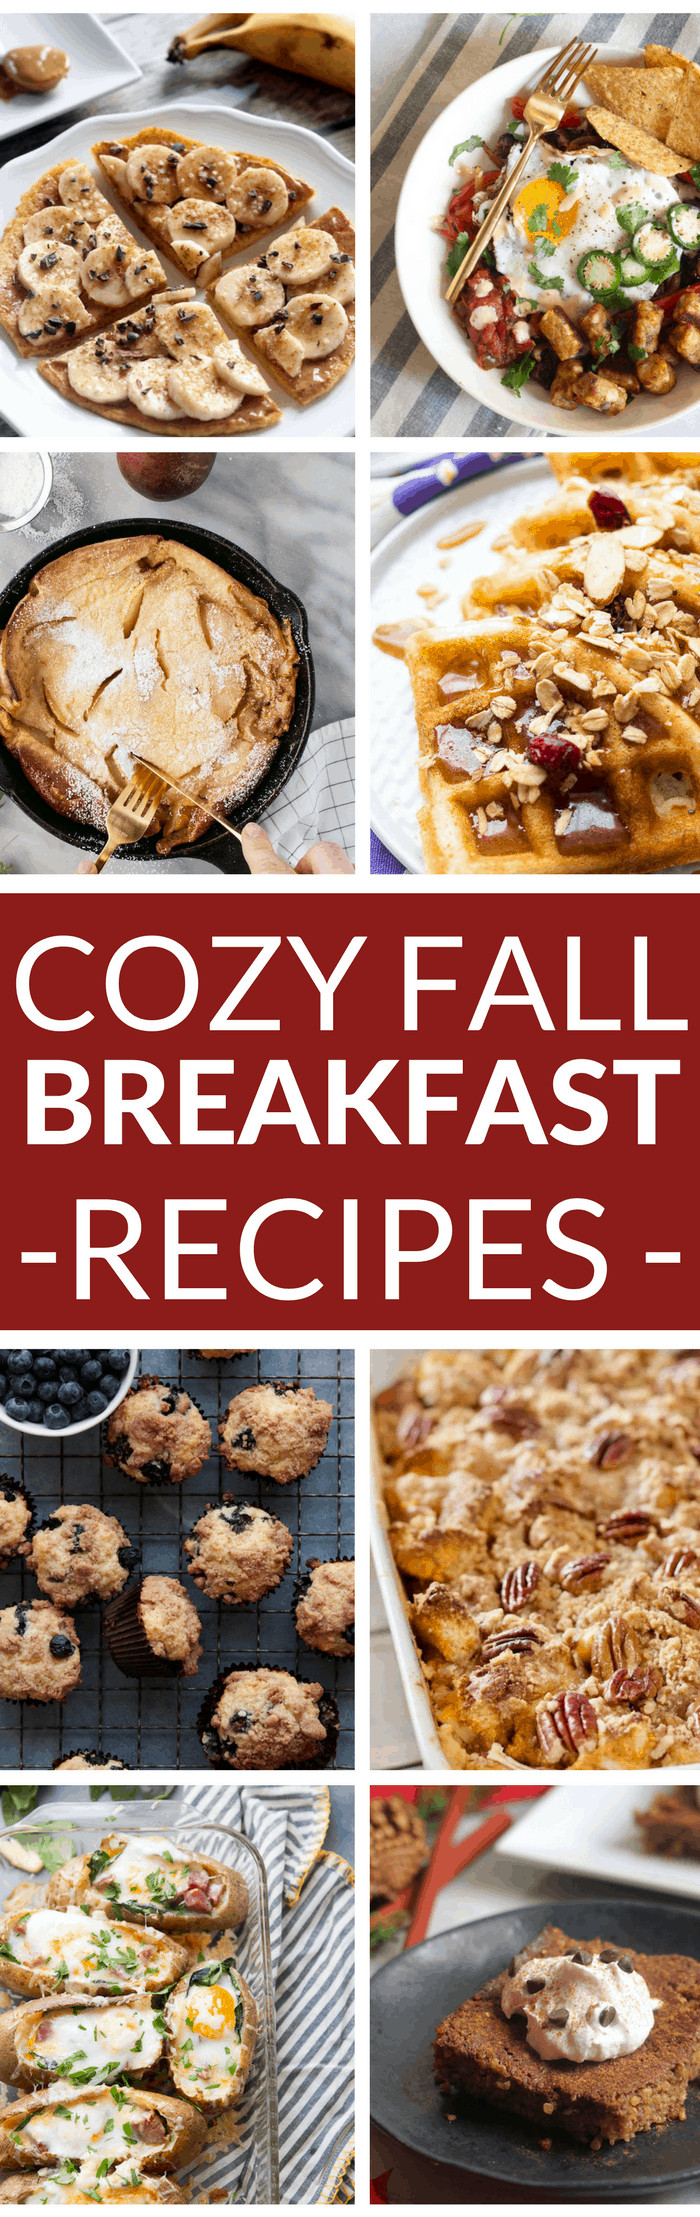 Healthy Fall Breakfast Recipes  25 Cozy Fall Breakfast Recipes Hummusapien